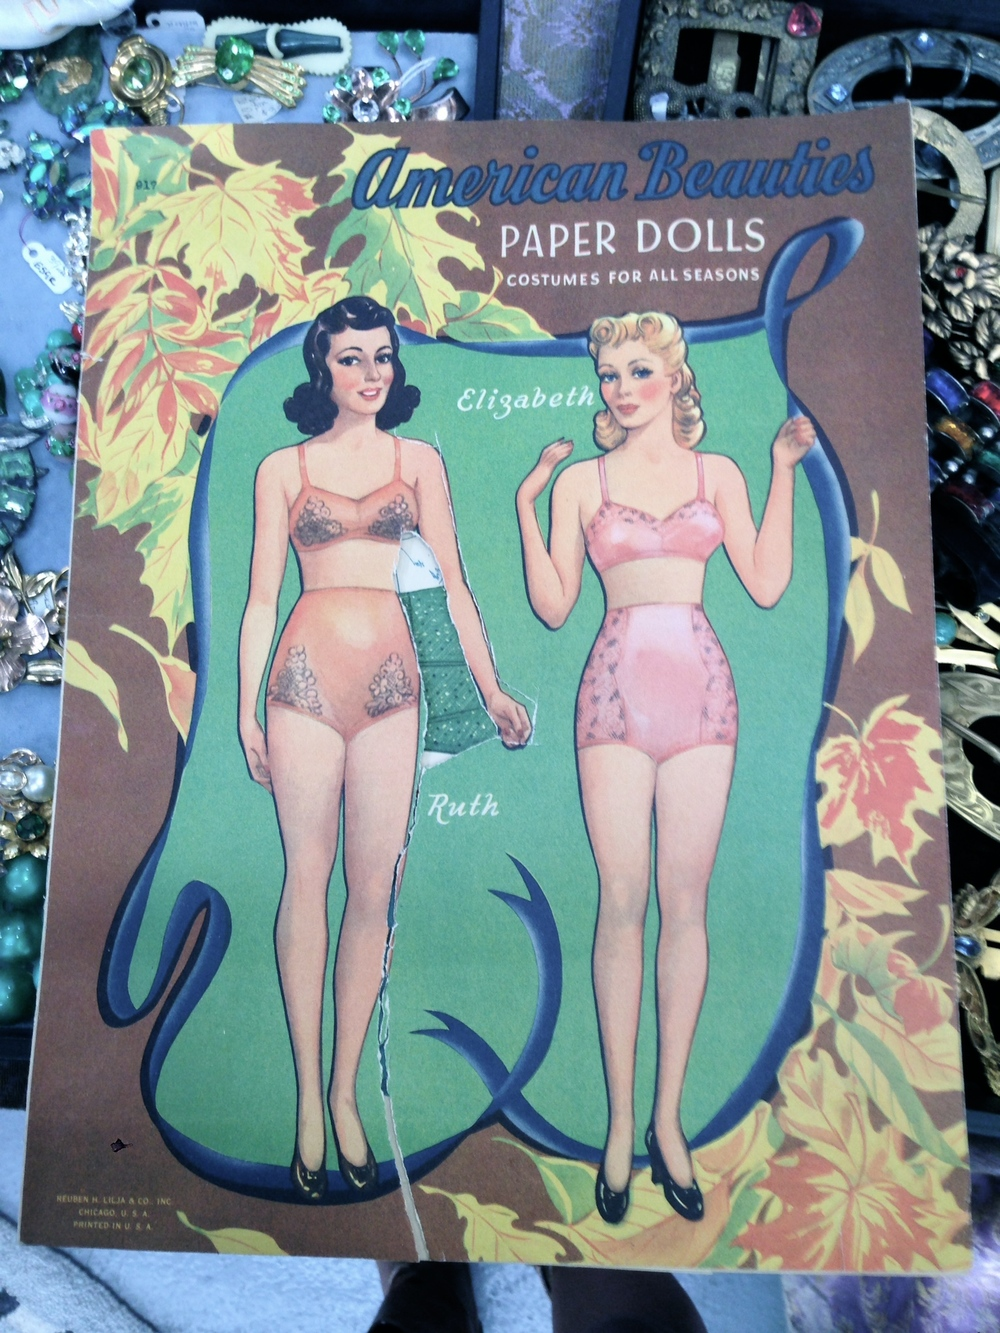 American Beauties Paper Dolls